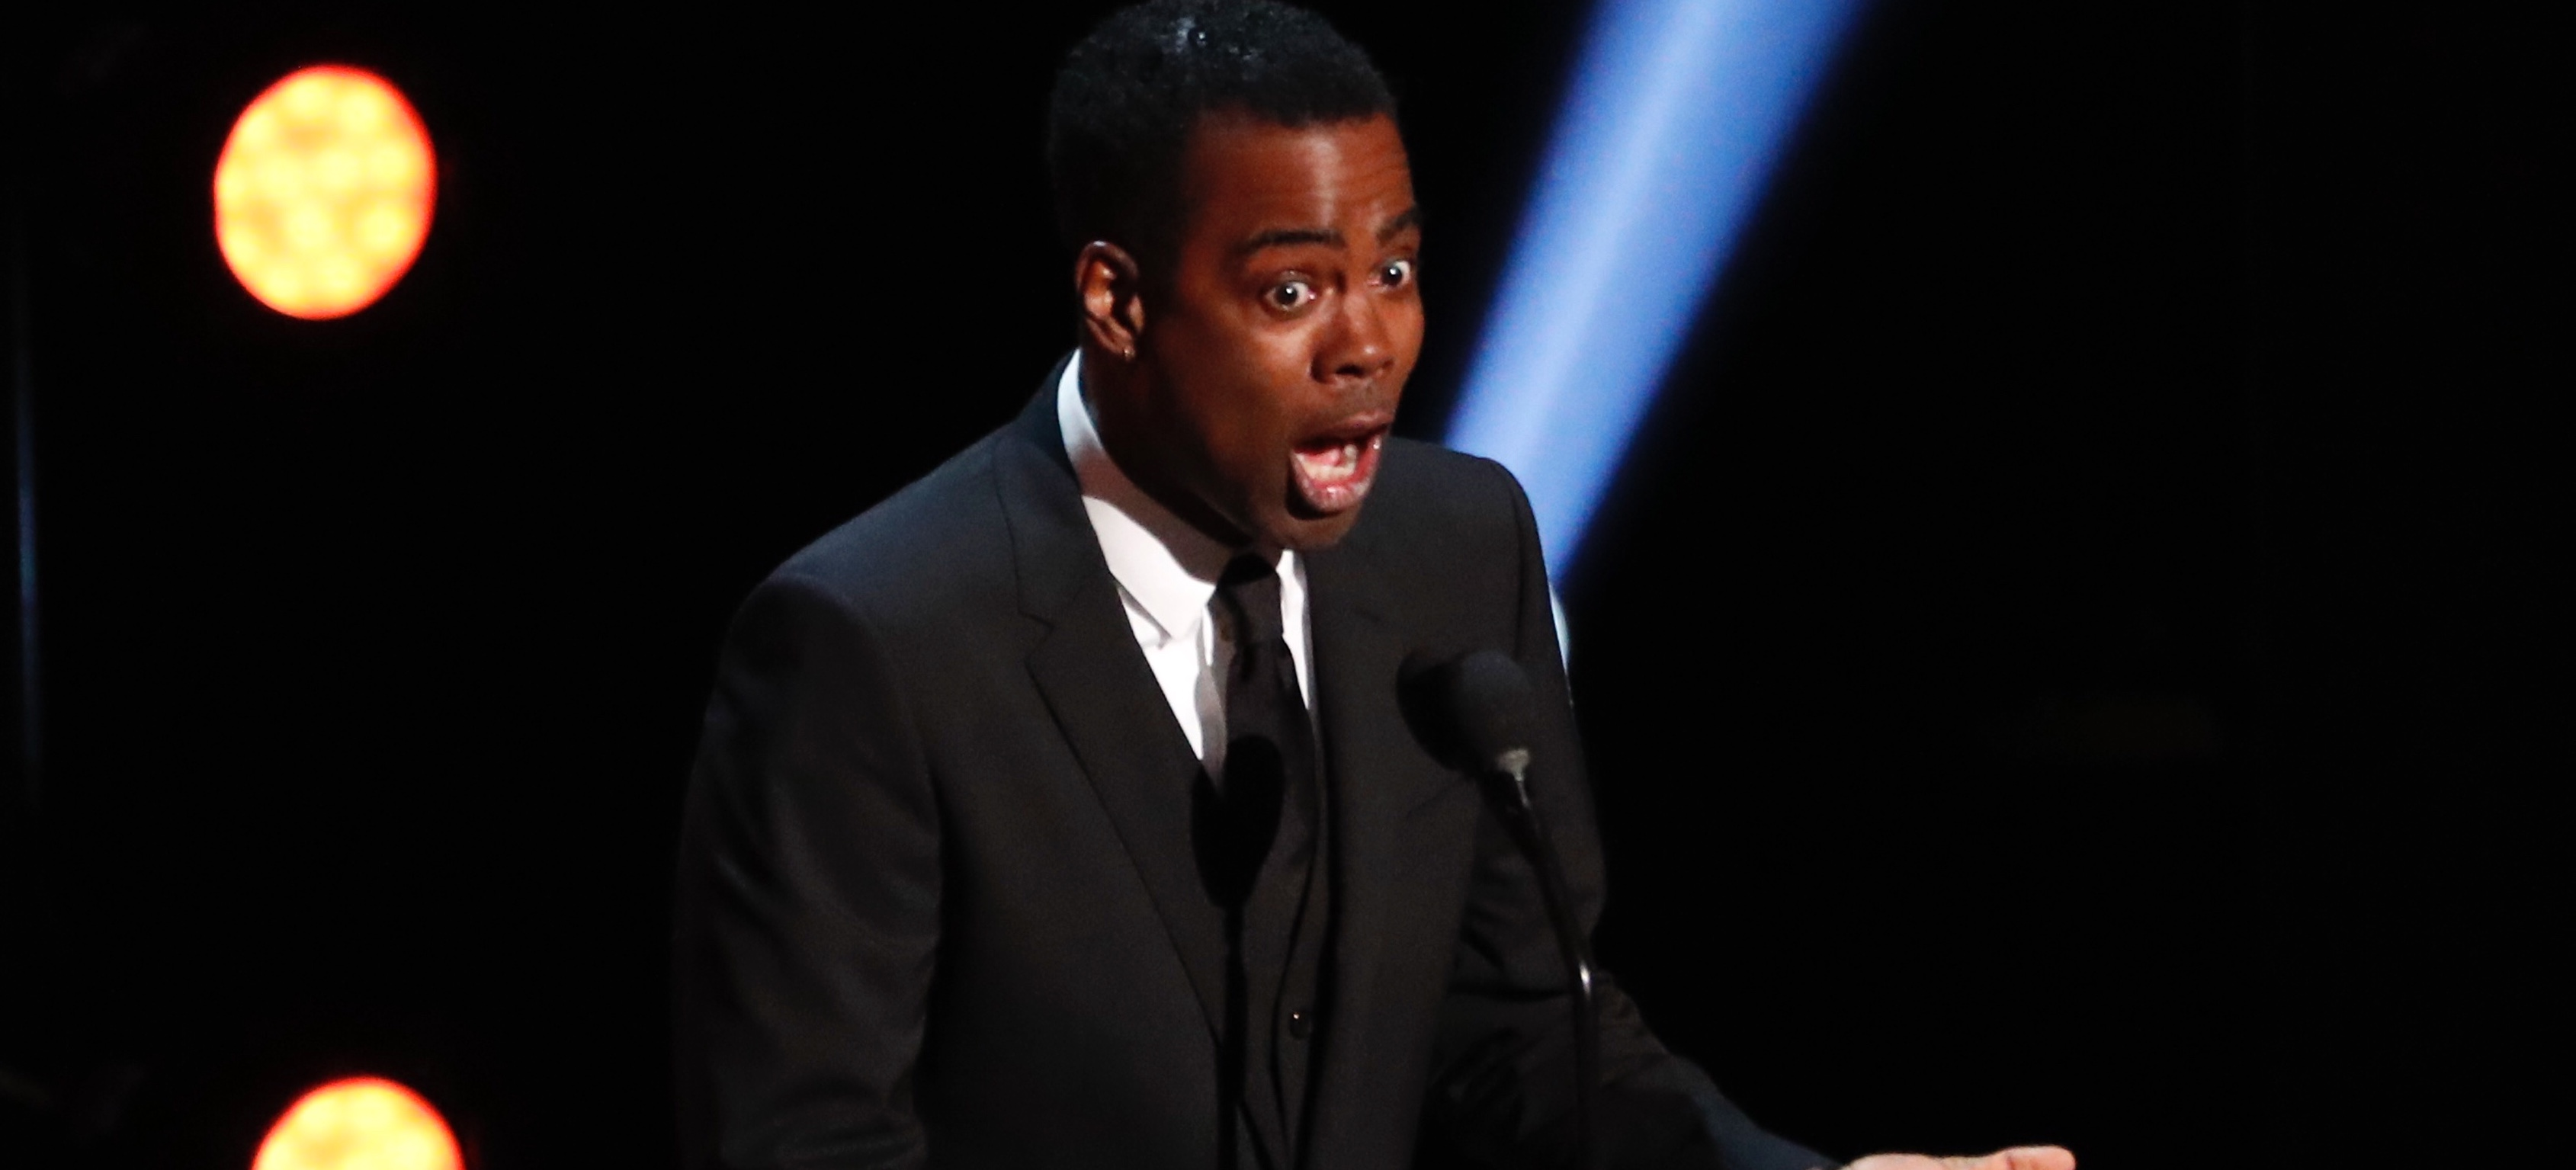 50th NAACP Image Awards - Show - Los Angeles, California, U.S., March 30, 2019 - Chris Rock speaks on stage. REUTERS/Mario Anzuoni